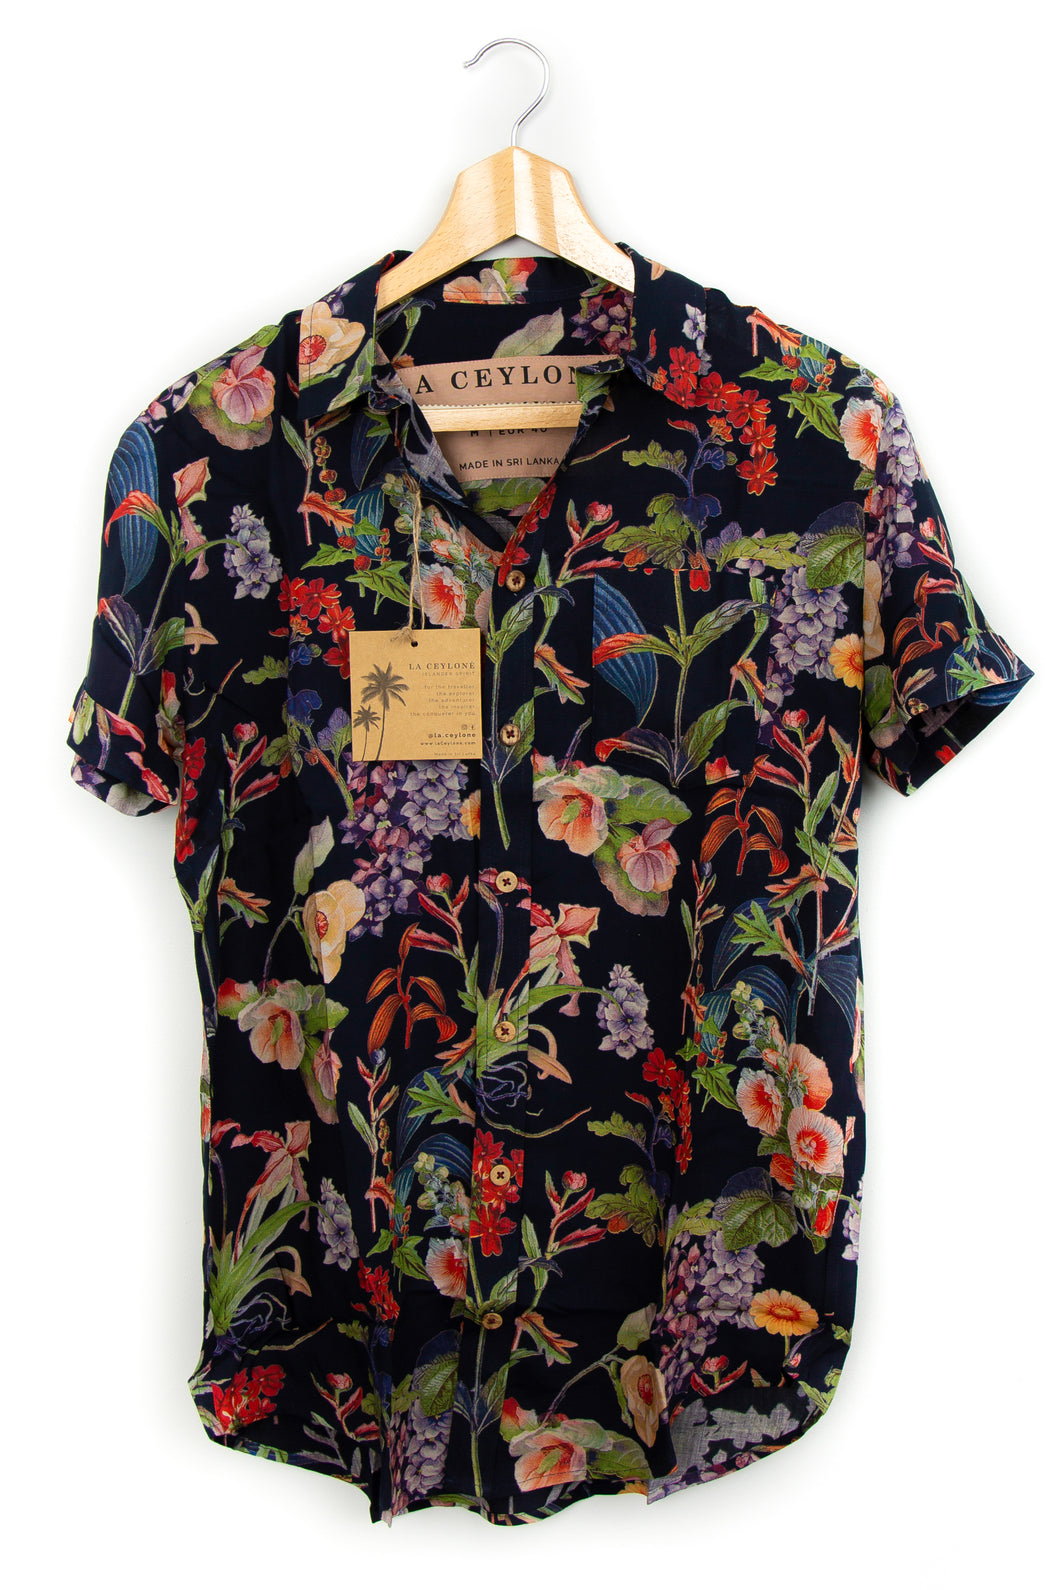 Garden of Tropics floral Hawaiian shirt blue